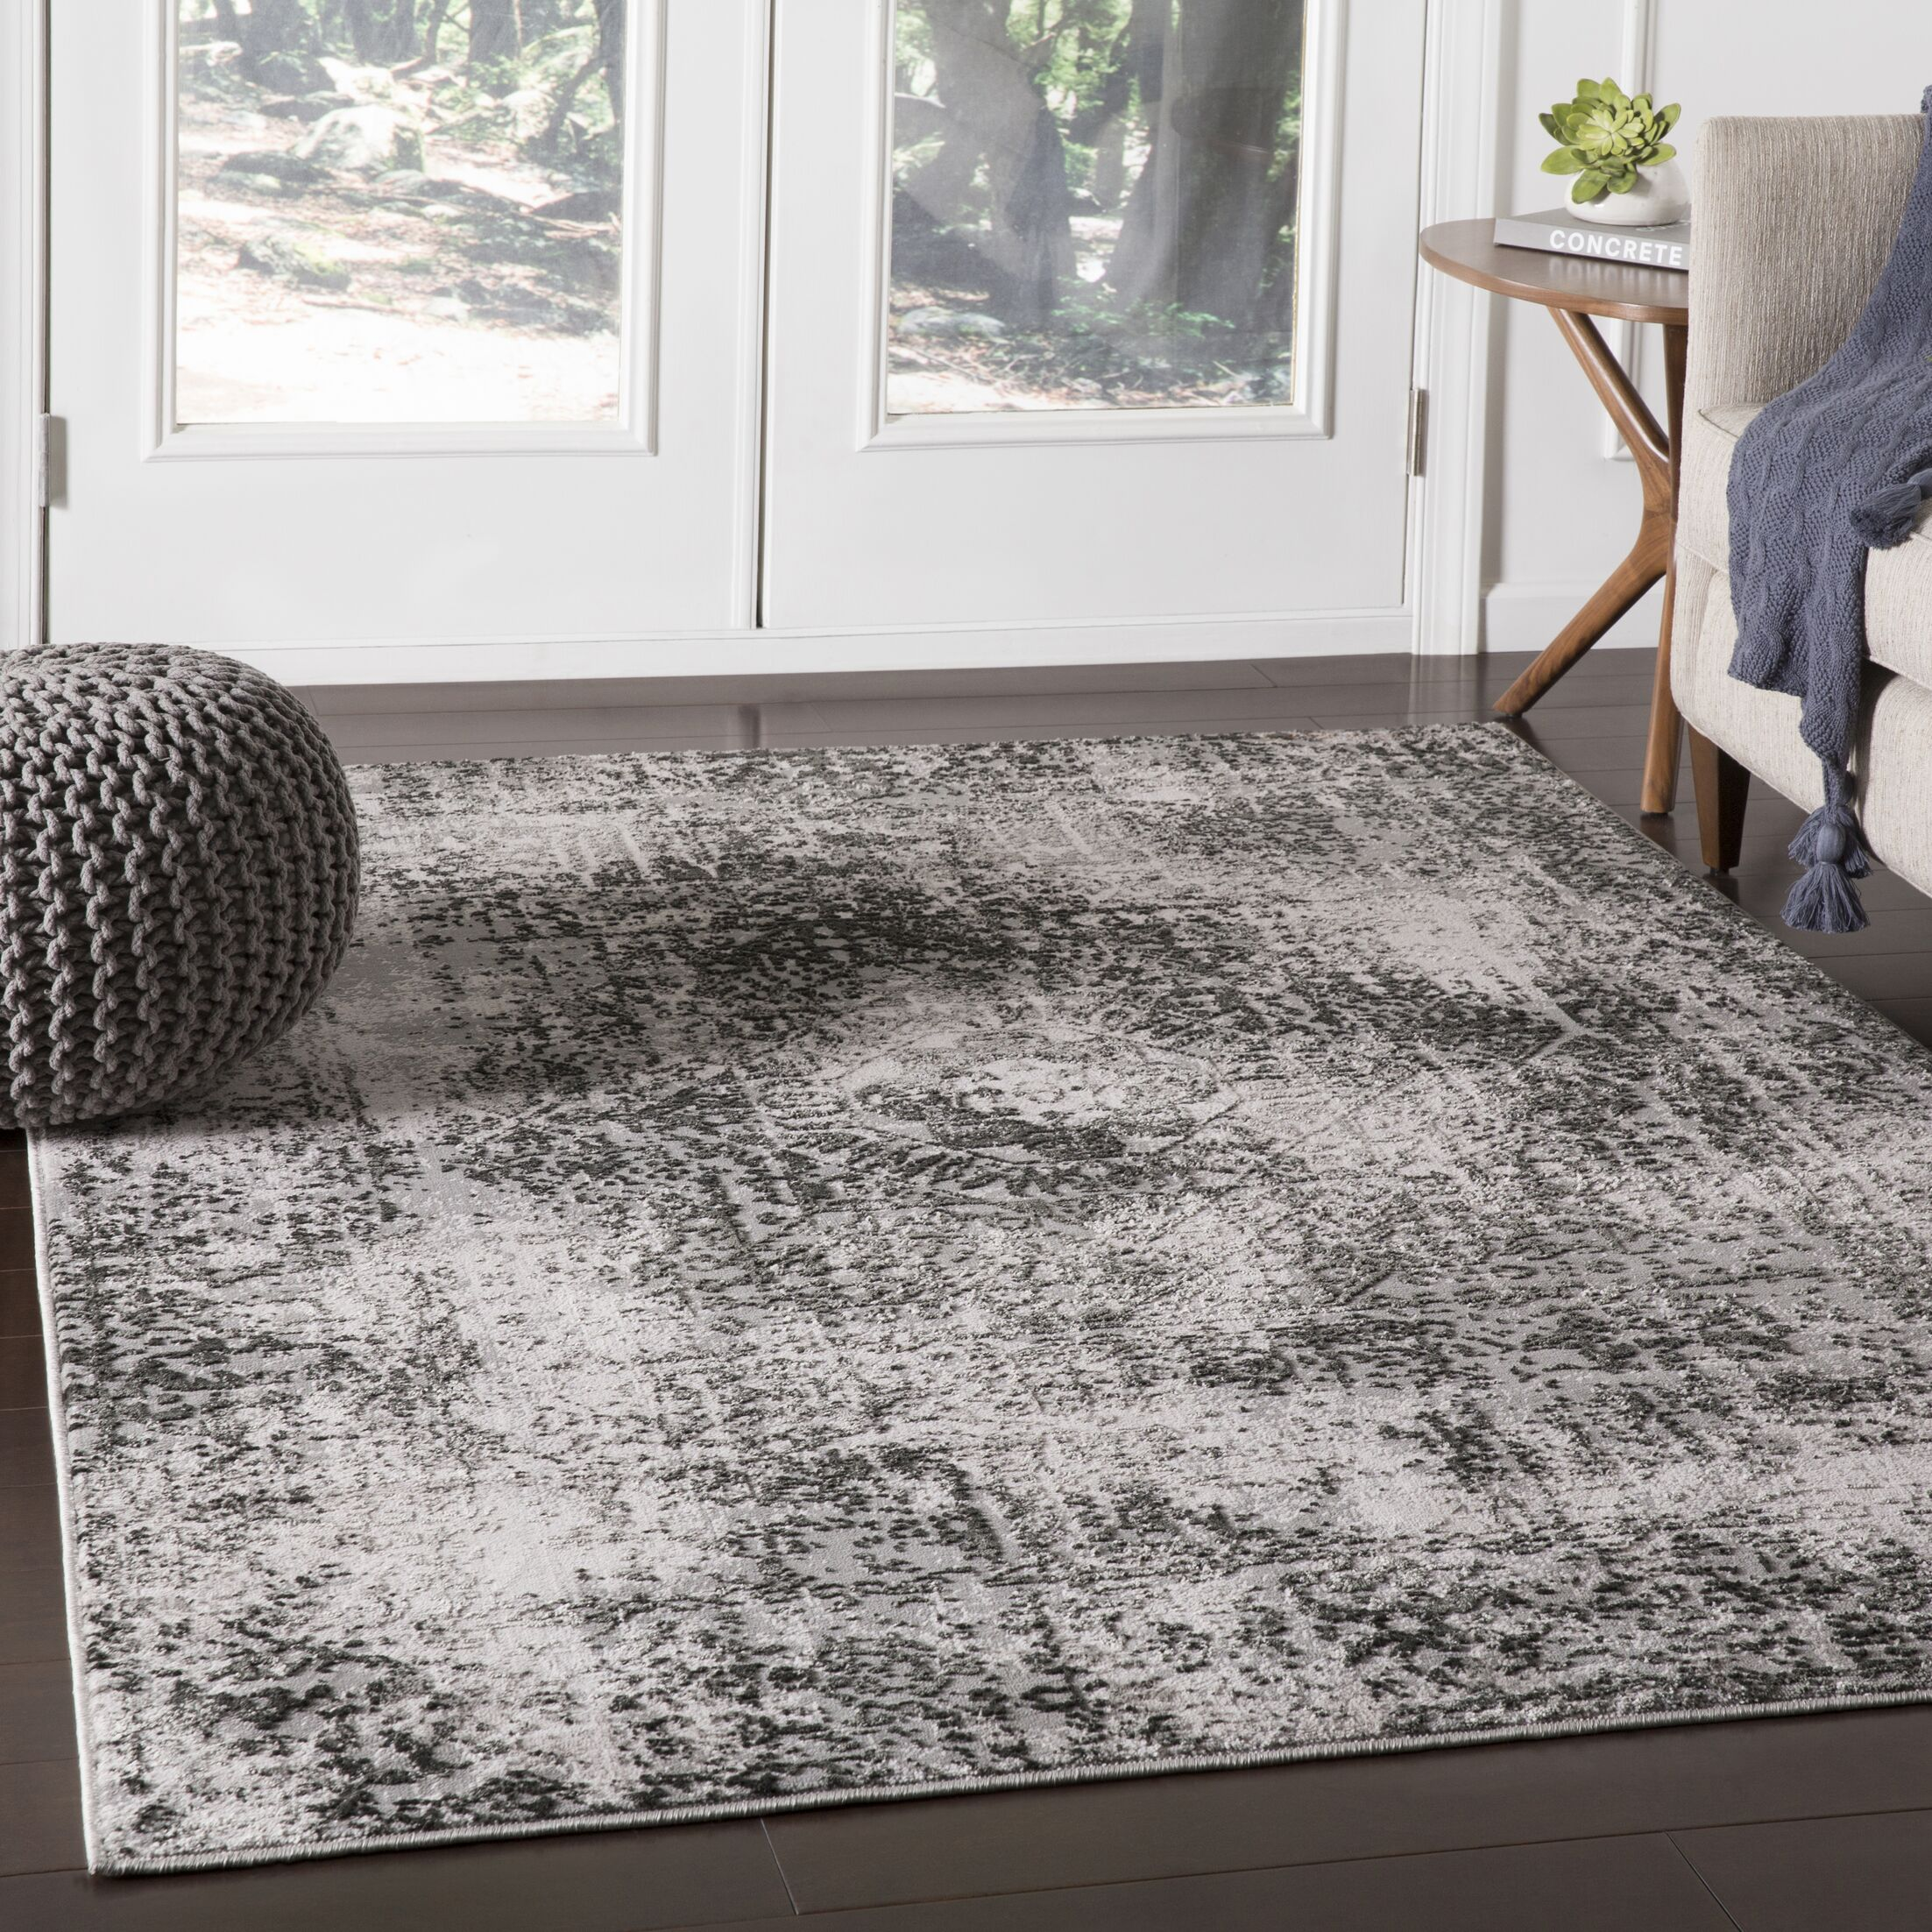 Parramore Oriental Black Area Rug Rug Size: Rectangle 9'3